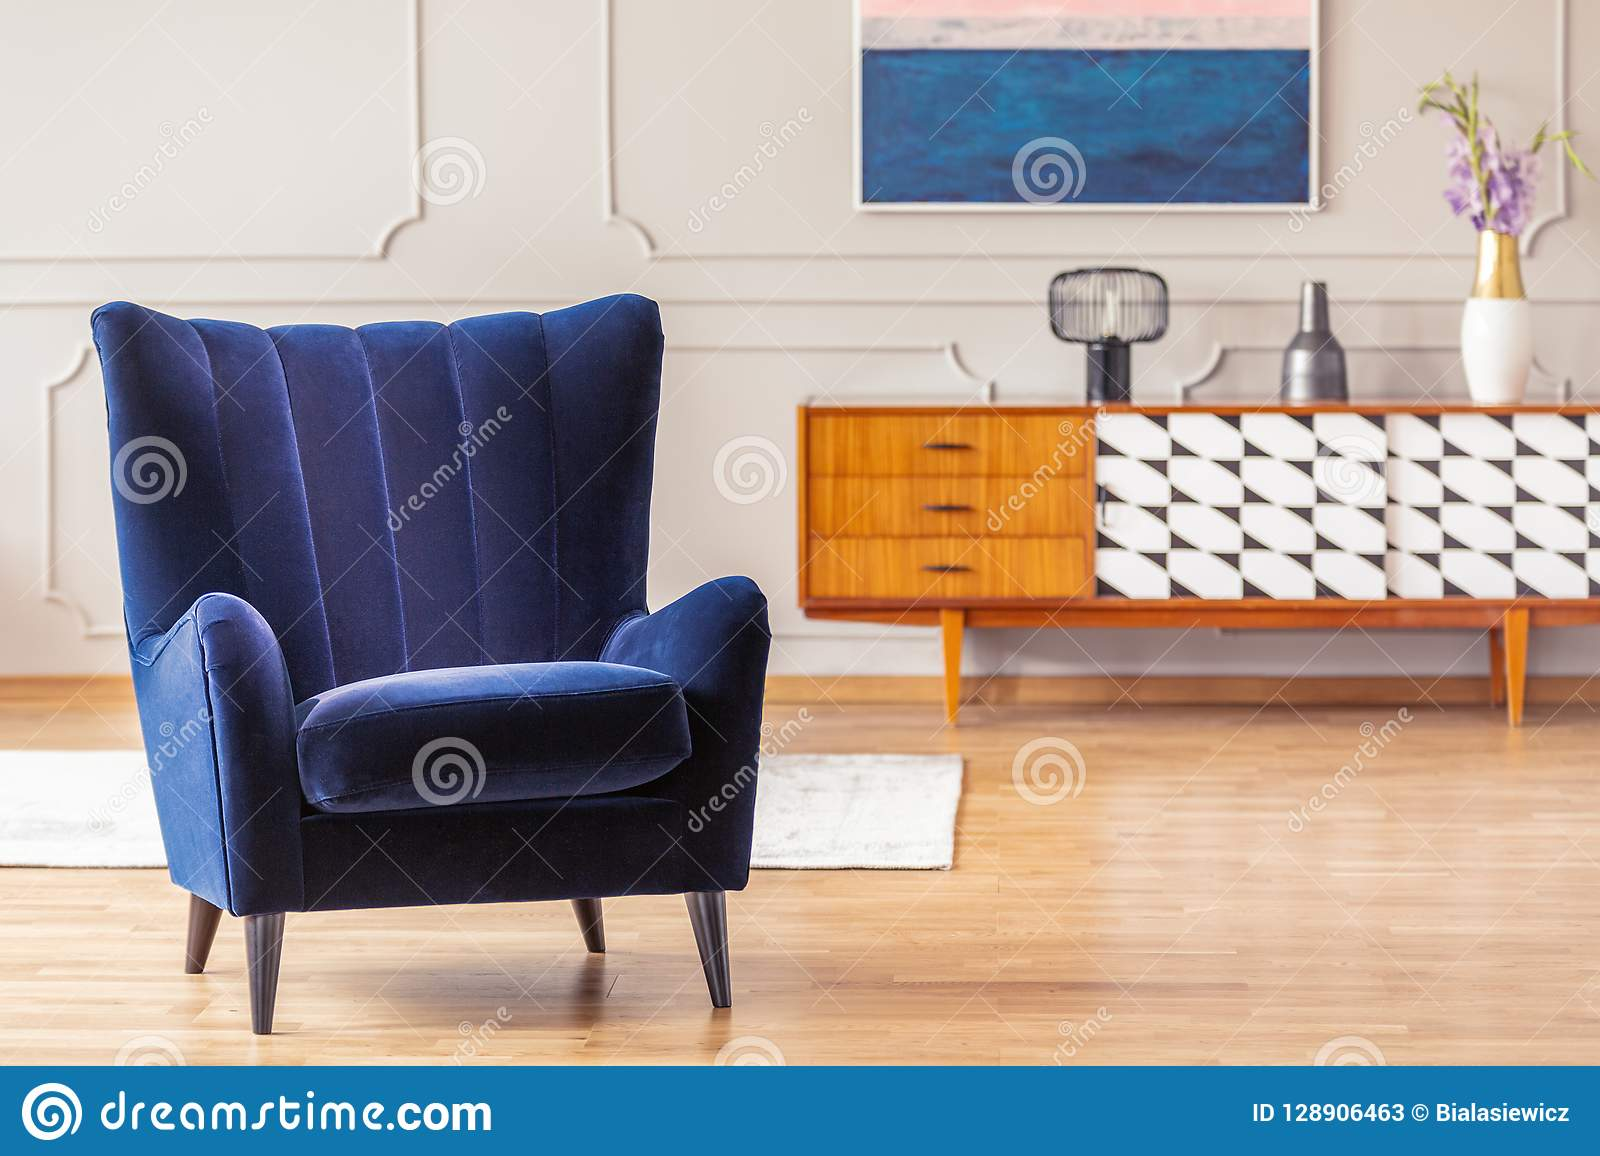 Dark blue armchair with a vintage cabinet in the background in a living room interior